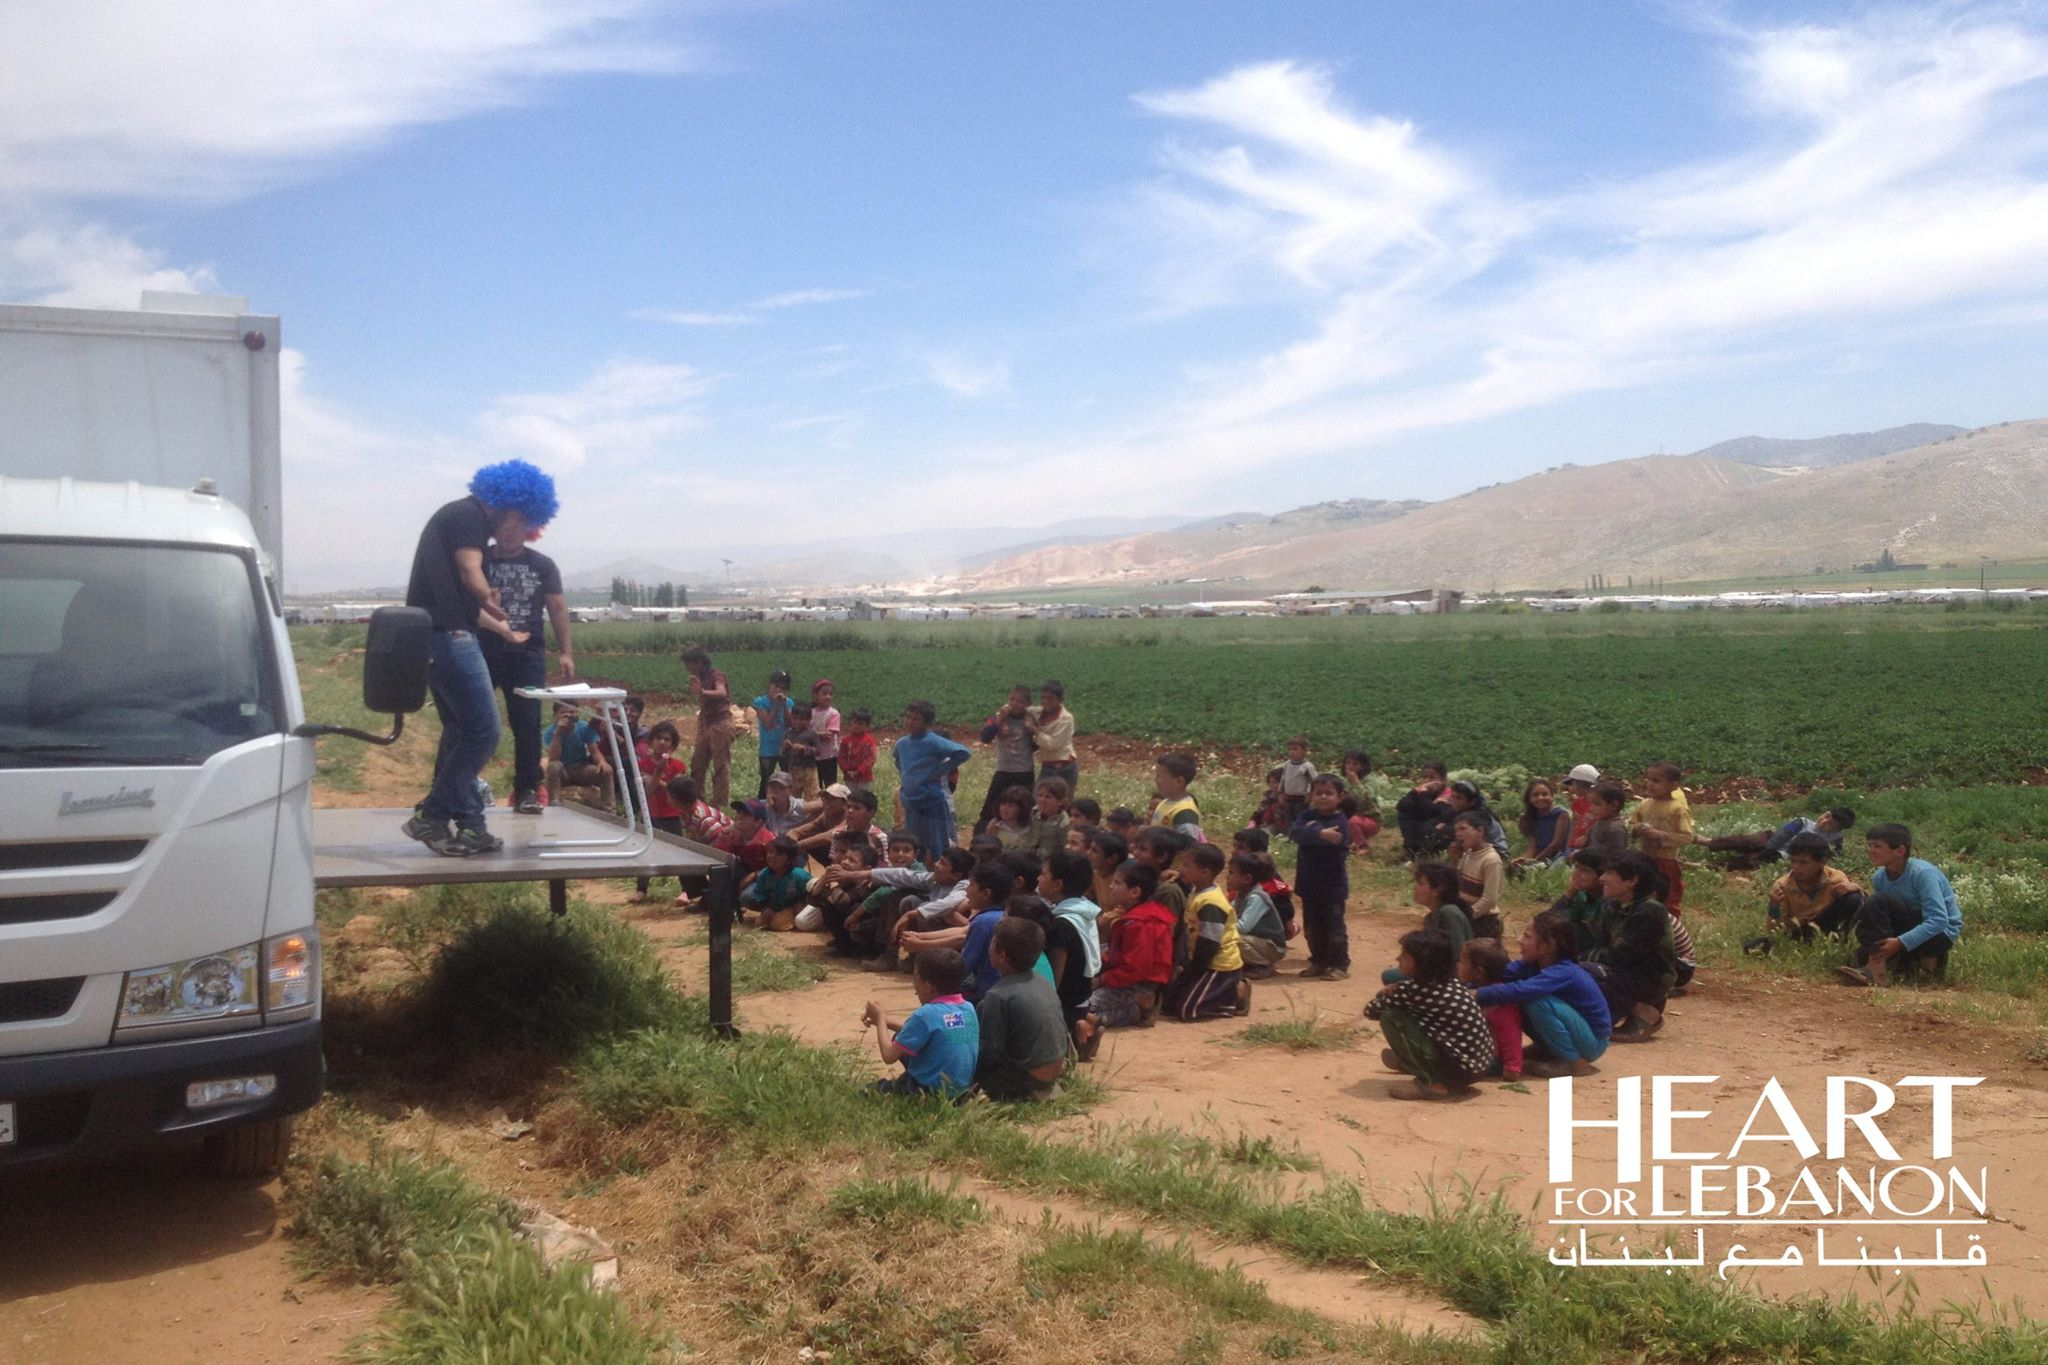 Summer camp in refugee camps? Yes, and it's out of a truck.